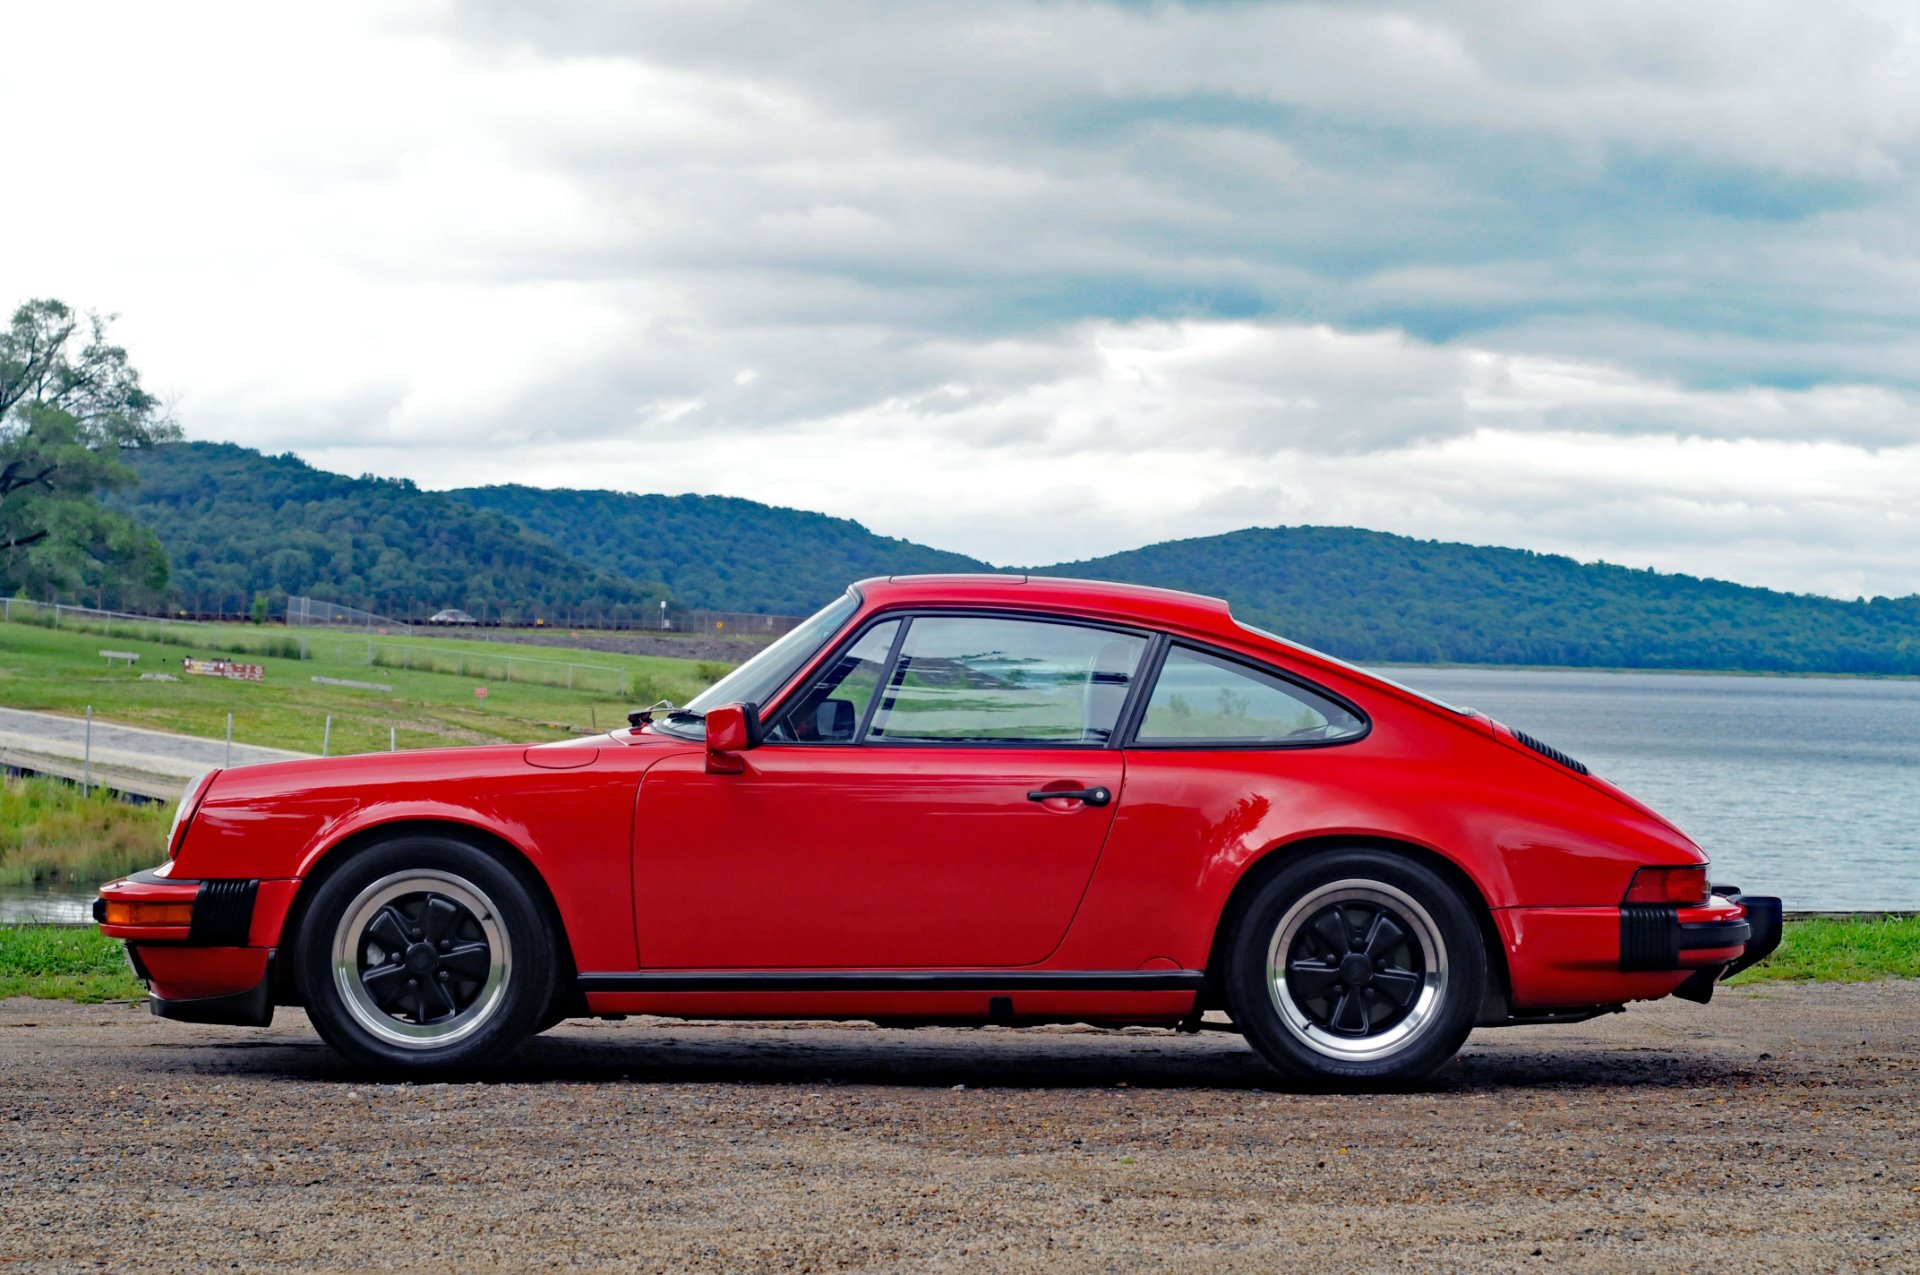 Used 1988 Porsche 911 Carrera Coupe